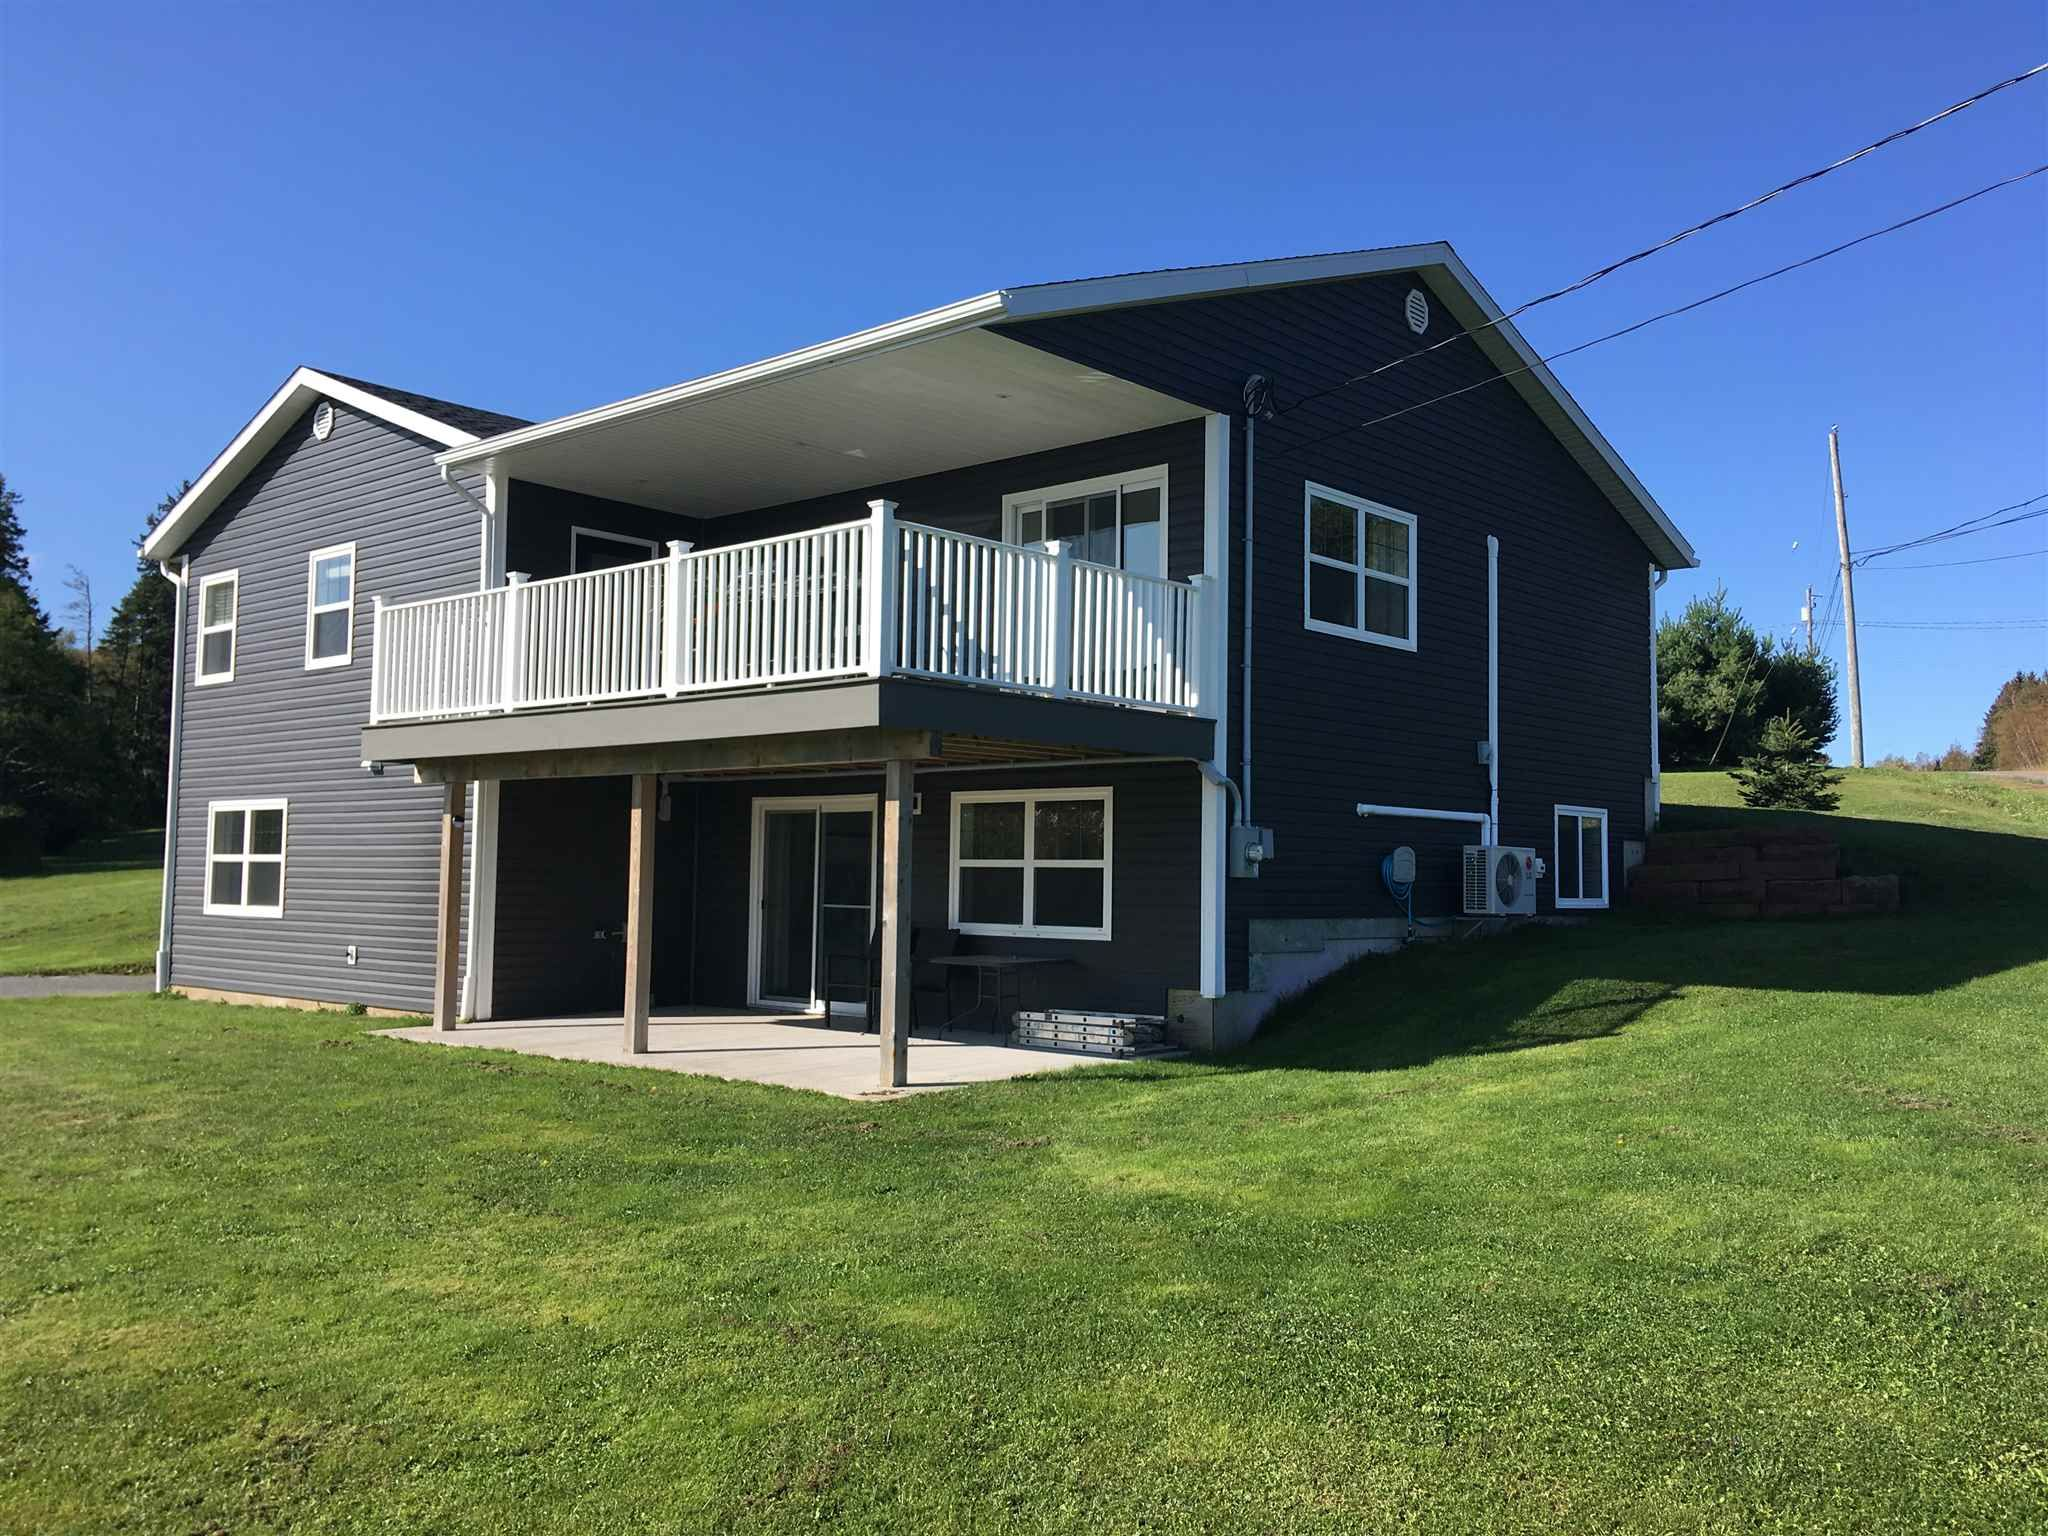 Main Photo: 57 Stanwood Drive in Lyons Brook: 108-Rural Pictou County Residential for sale (Northern Region)  : MLS®# 202101003